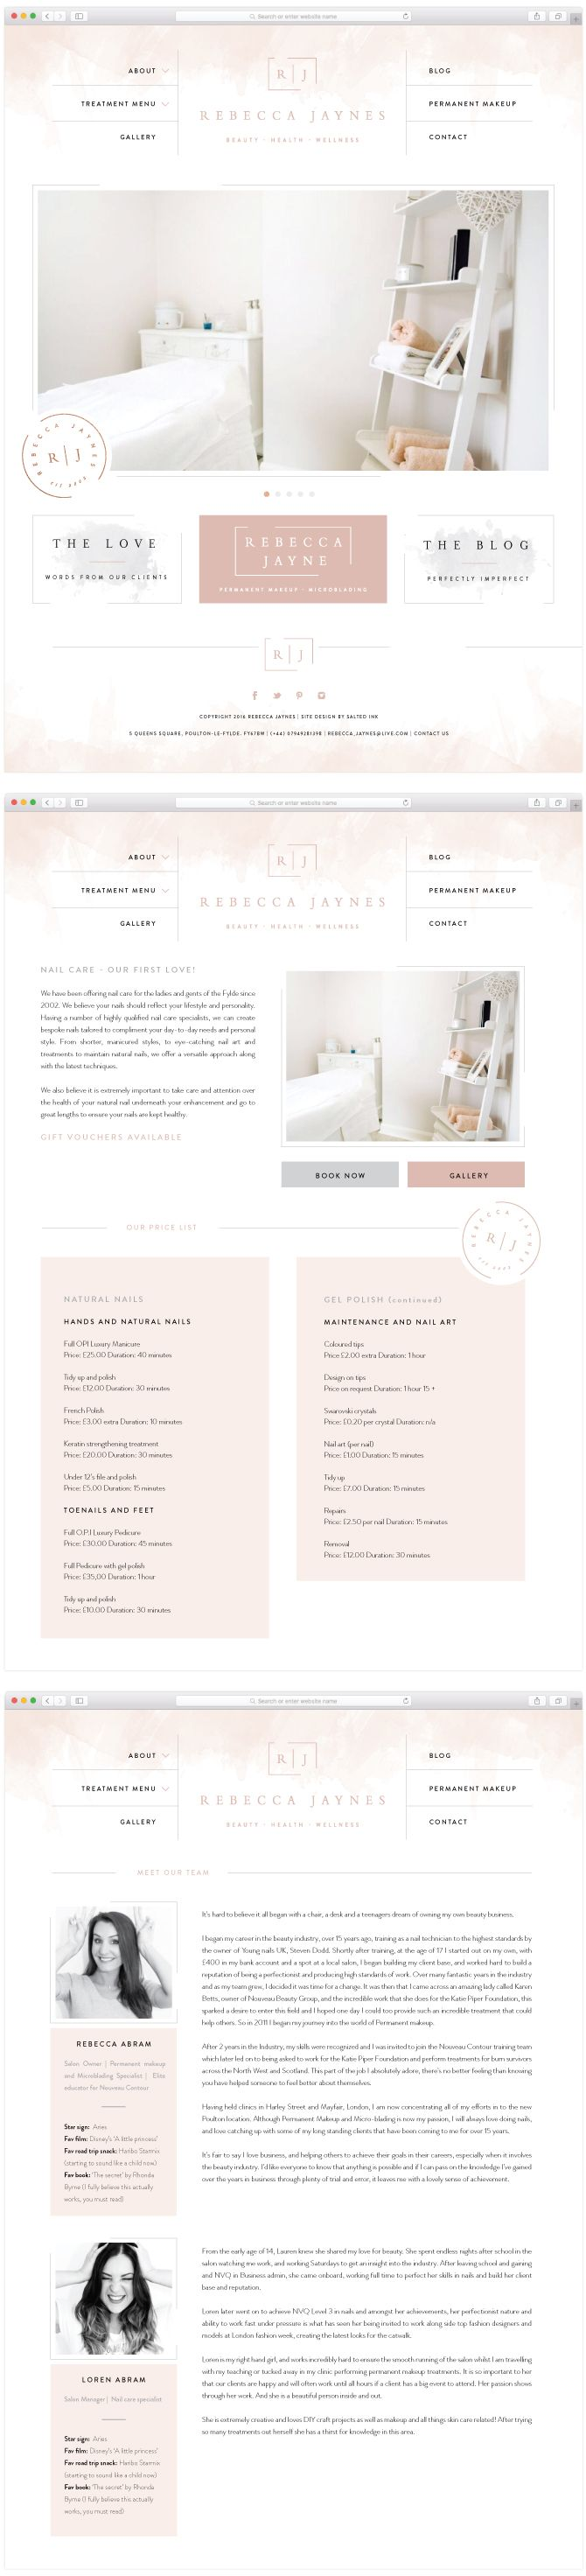 Rebecca Jaynes Beauty Salon Brand Design by Salted Ink | Salon Branding | Brand Design and Website Design | View the full brand transformation at www.saltedink.com |